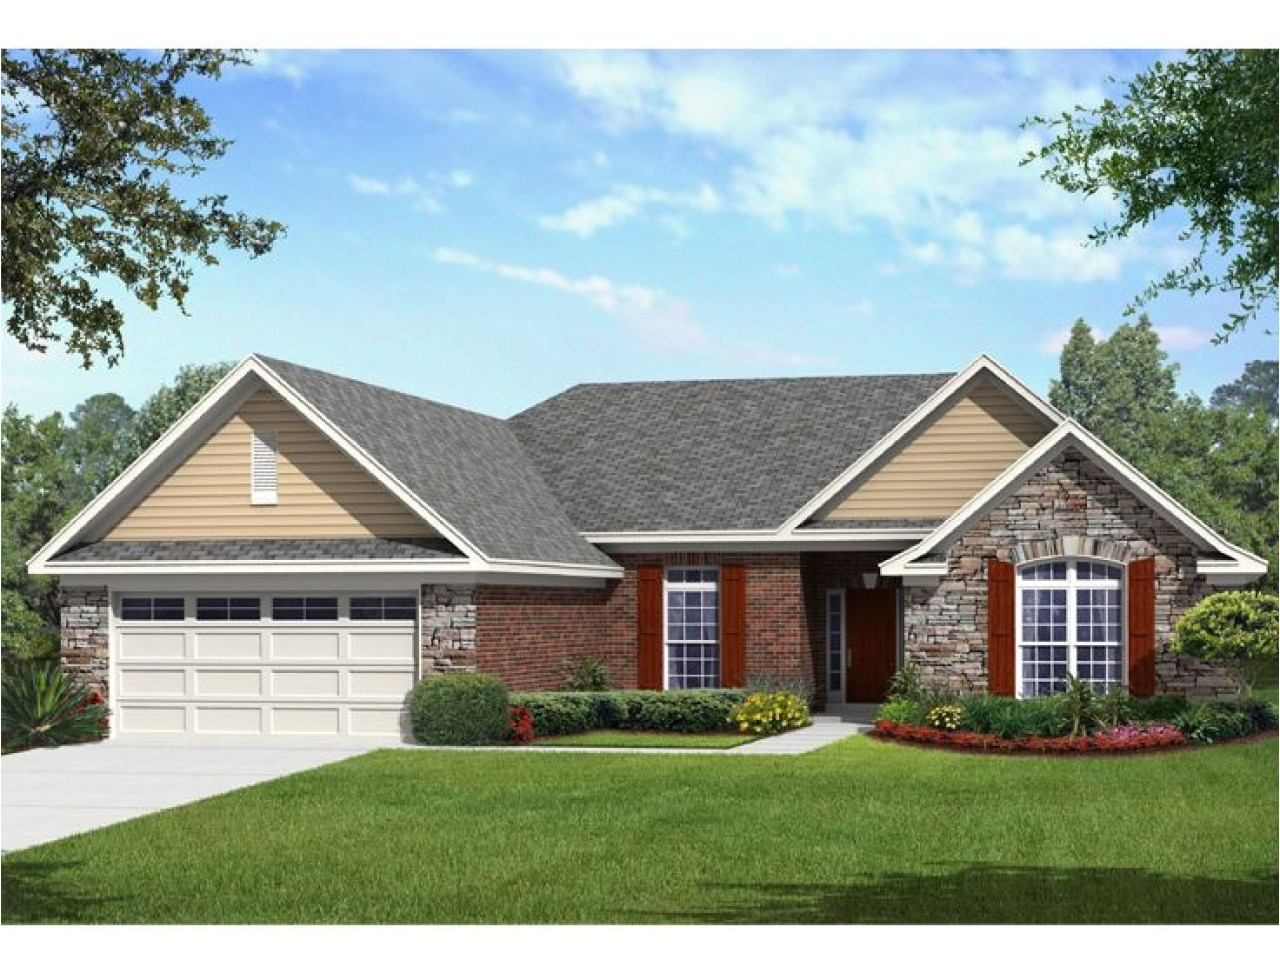 7eca8c924a3221e3 one story chalet best one story house plans